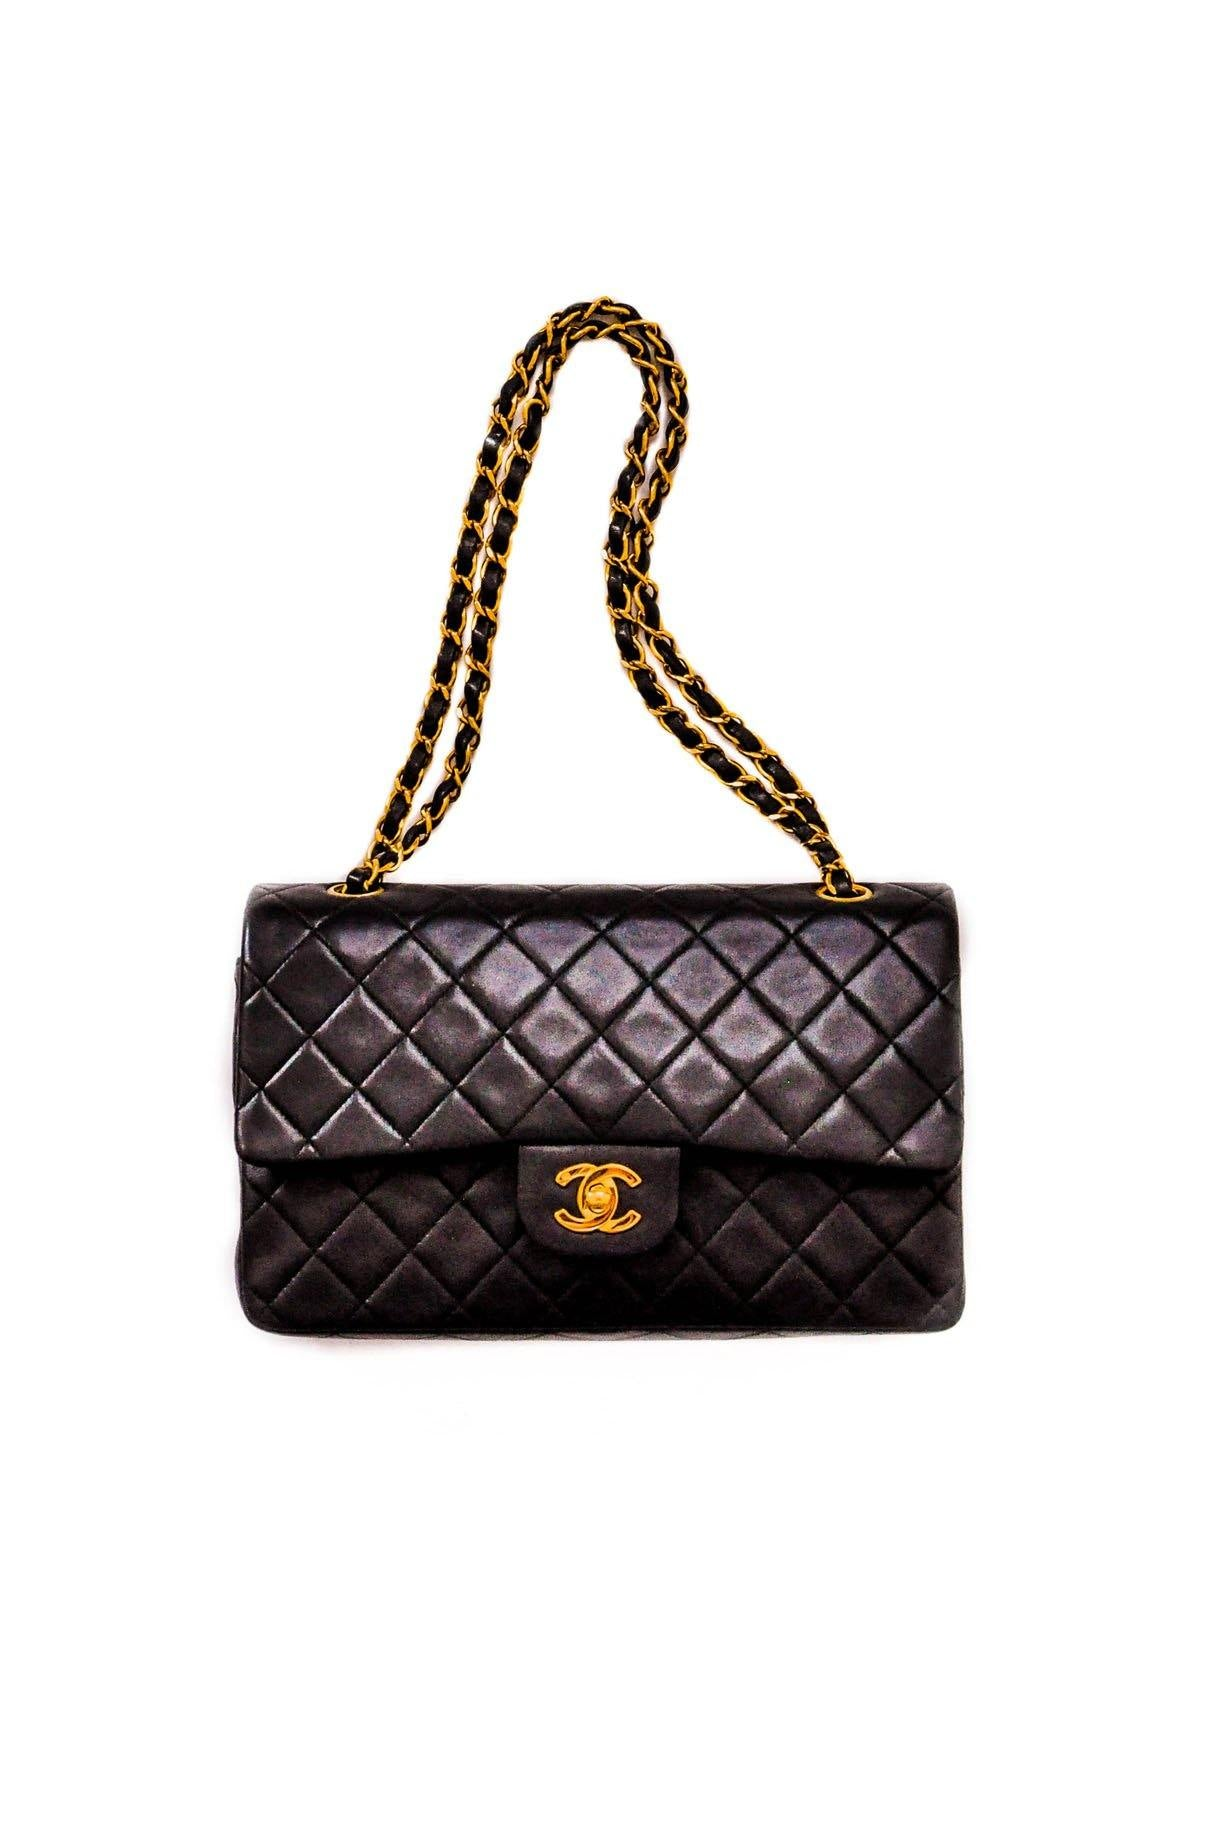 Vintage Chanel 2.55 Double Flap Bag from Sweet and Spark